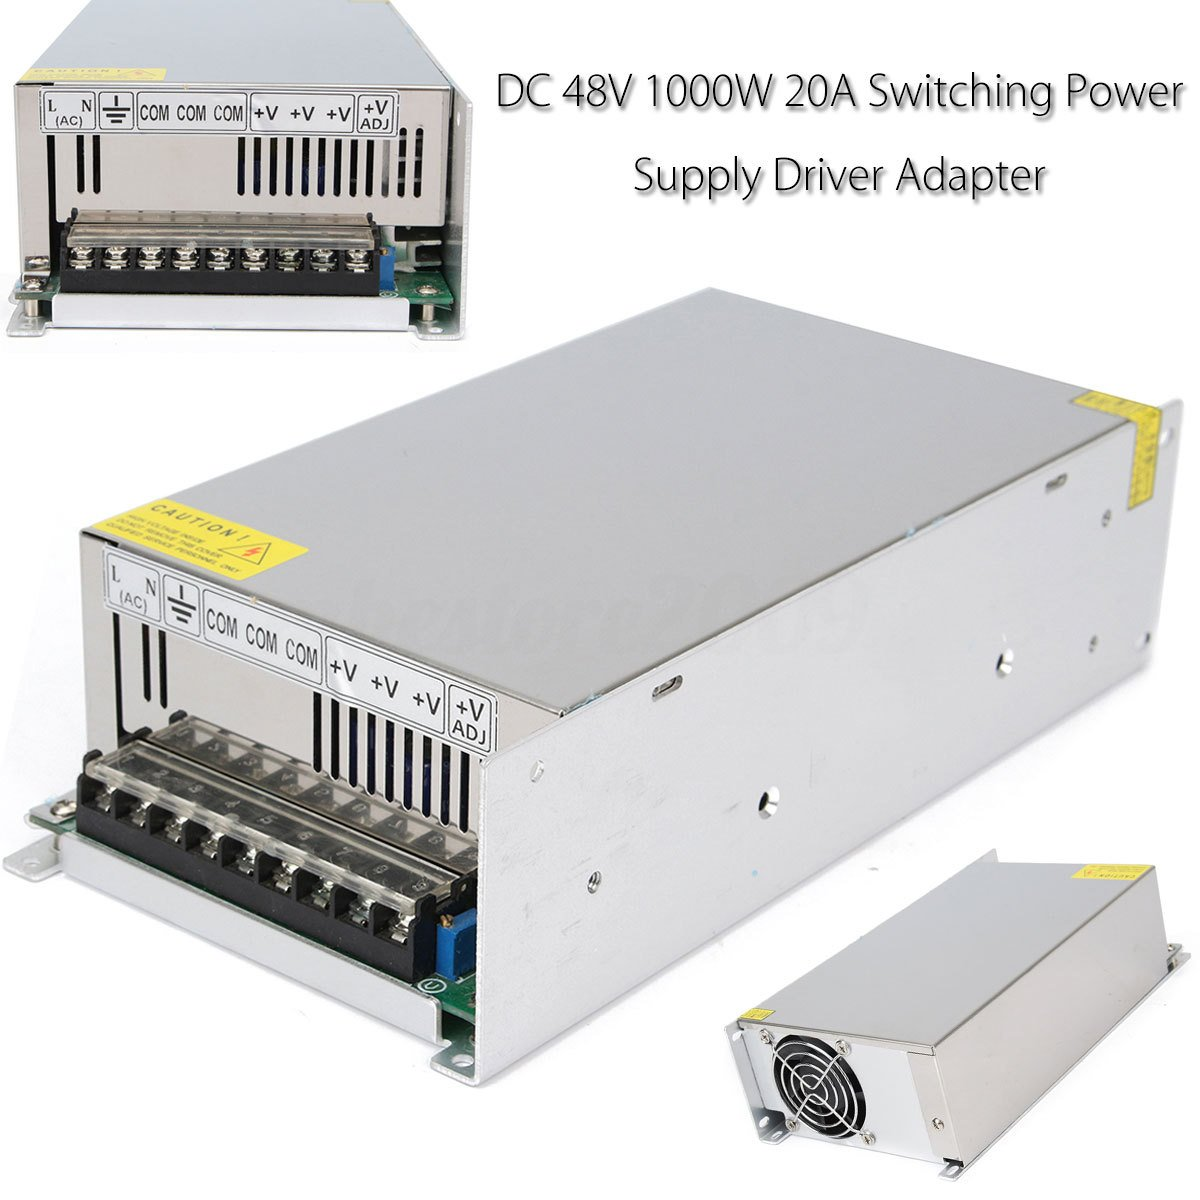 48V 20A 1000W Universal Regulated Switching Power Supply Driver for CCTV camera LED Strip AC 100-240V Input to DC 48V